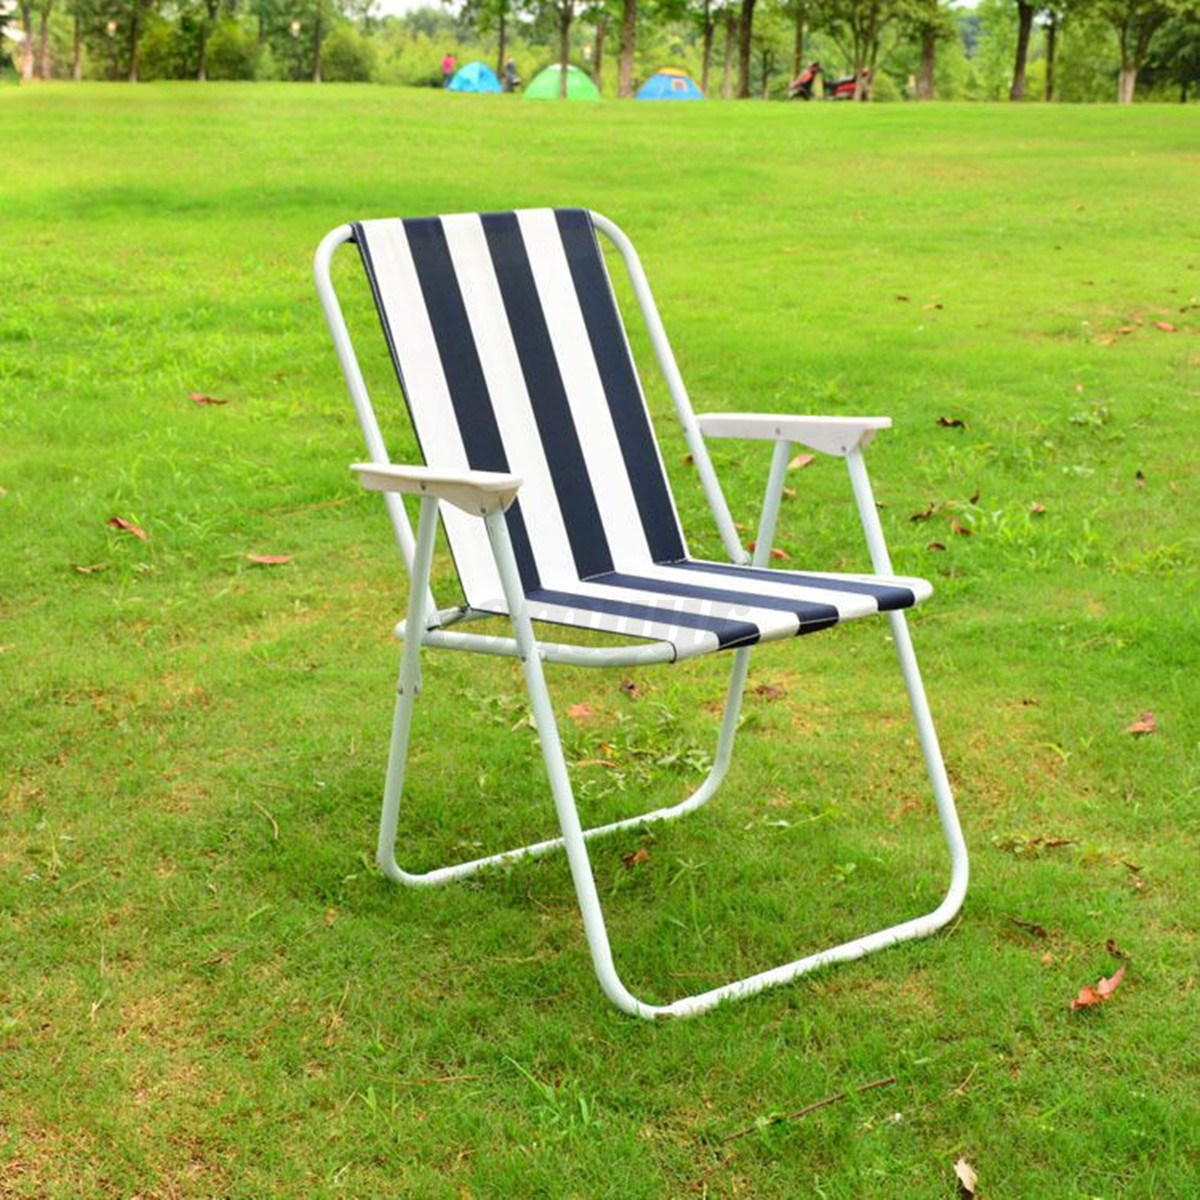 fishing ladder chair accent bedroom chairs folding striped stool garden deck seat for